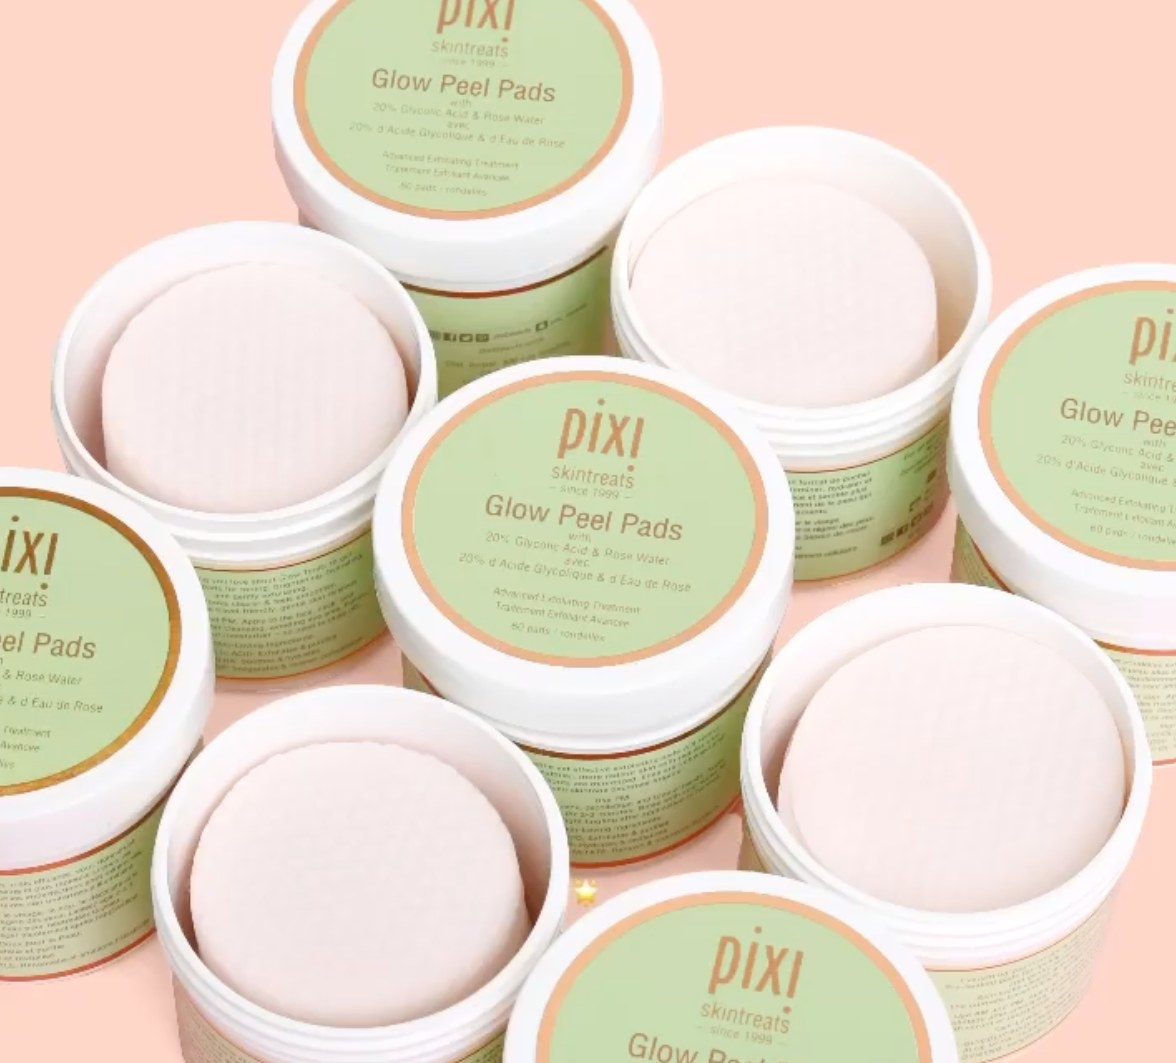 Glow Peel Pads, some open, some closed